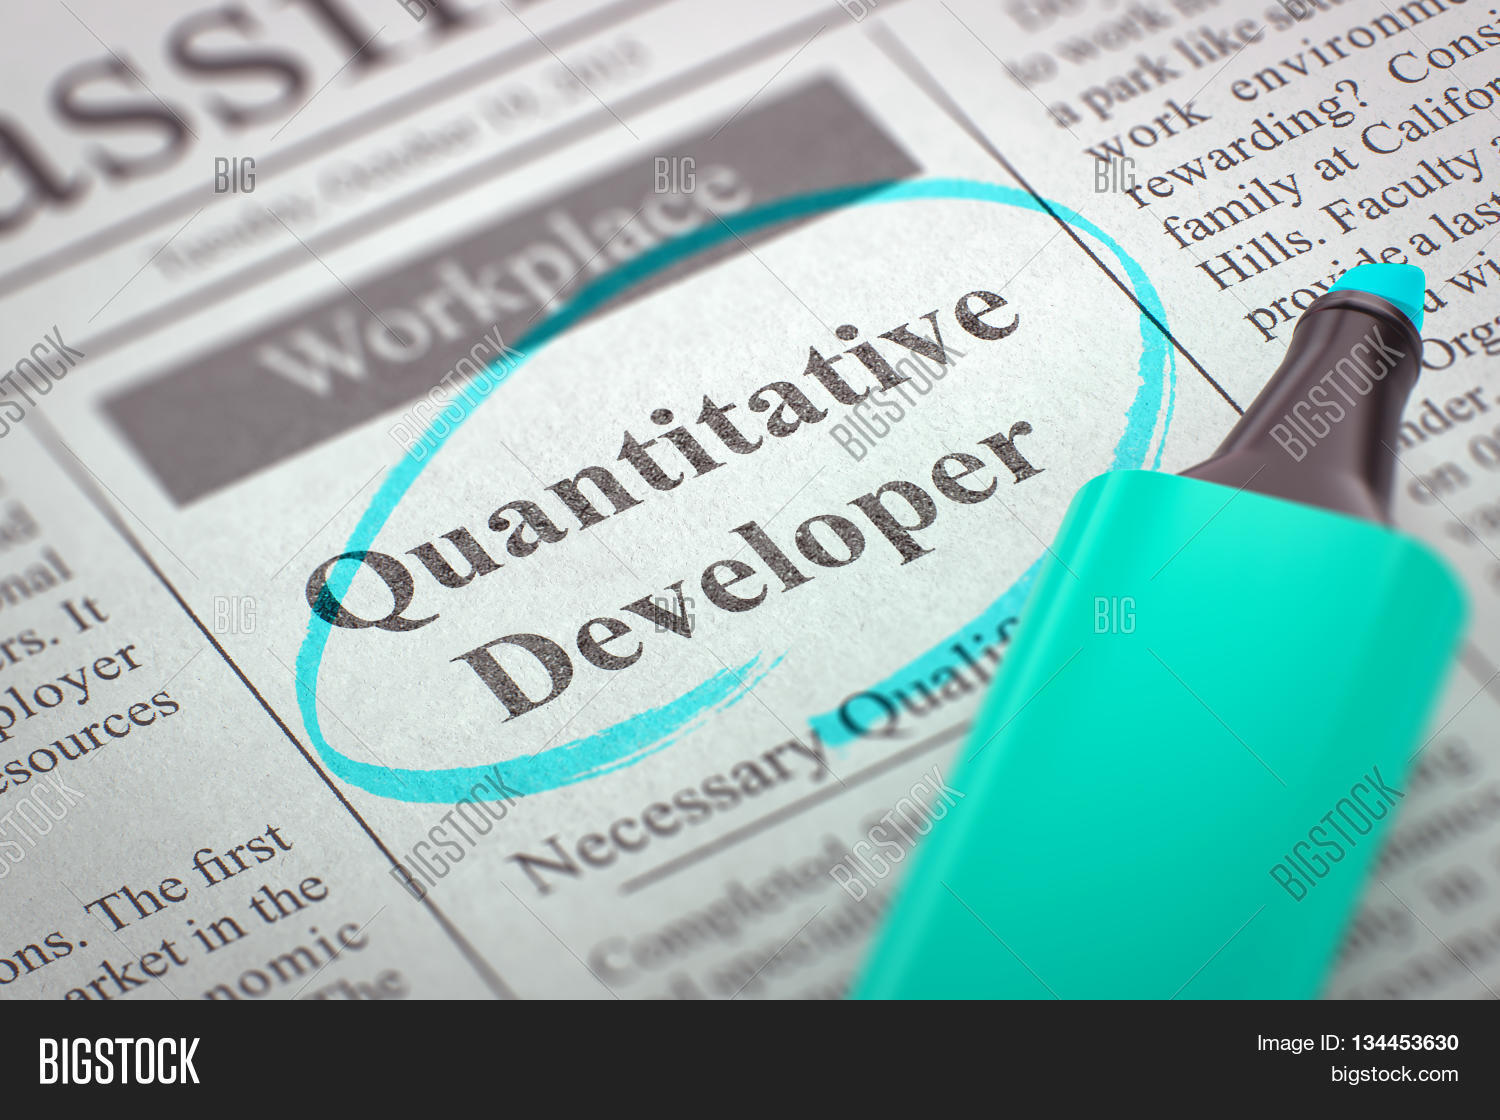 how to become a quantitative developer